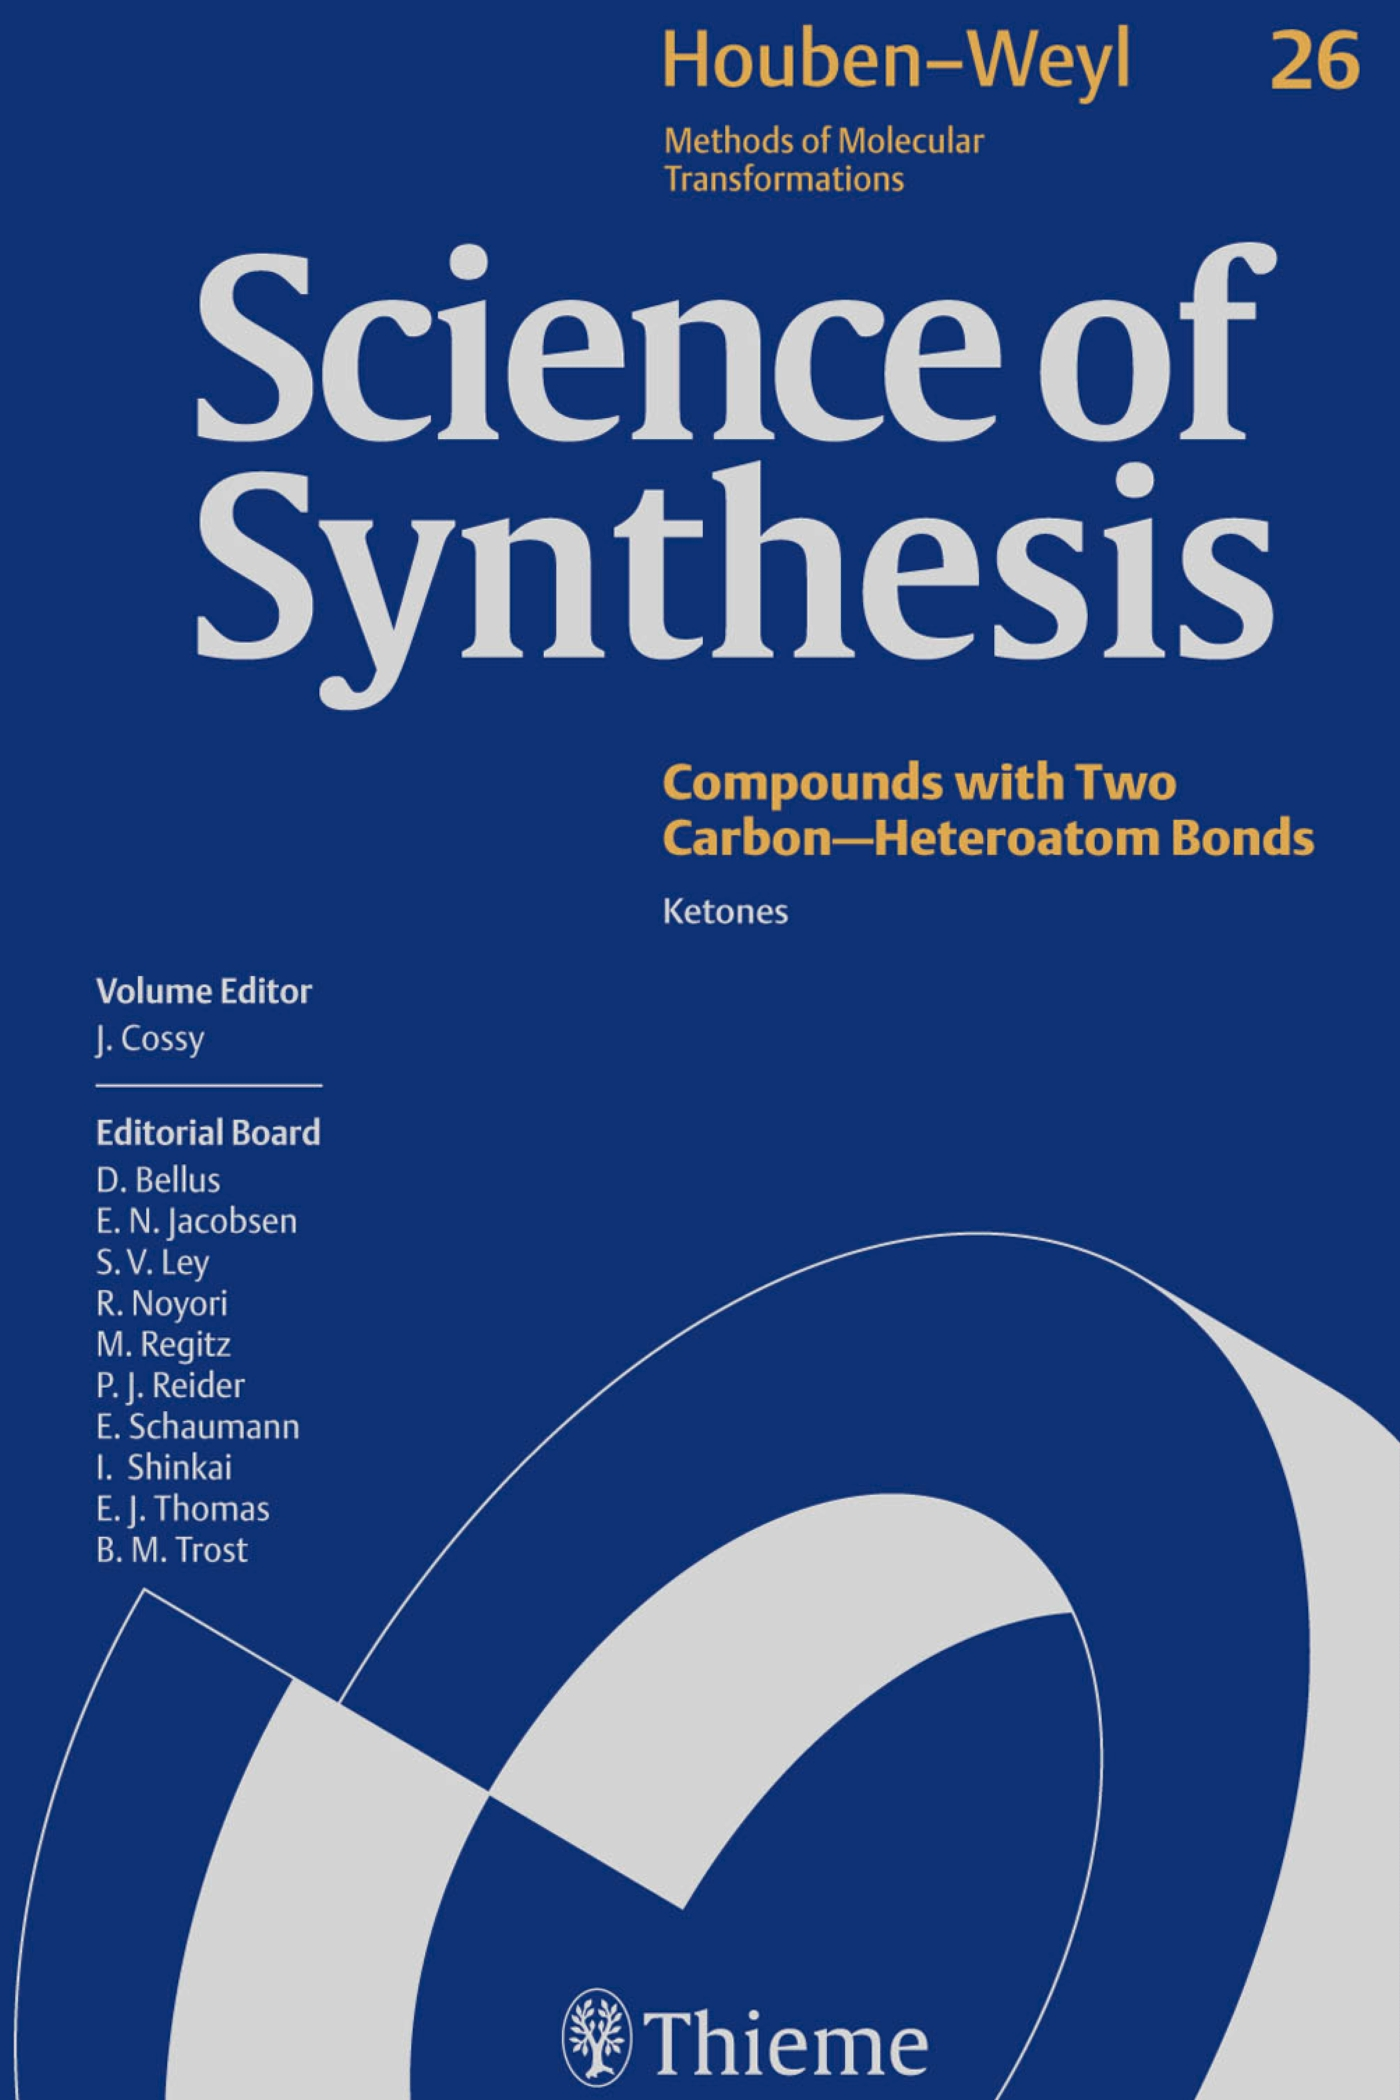 Science of Synthesis: Houben-Weyl Methods of Molecular Transformations  Vol. 26